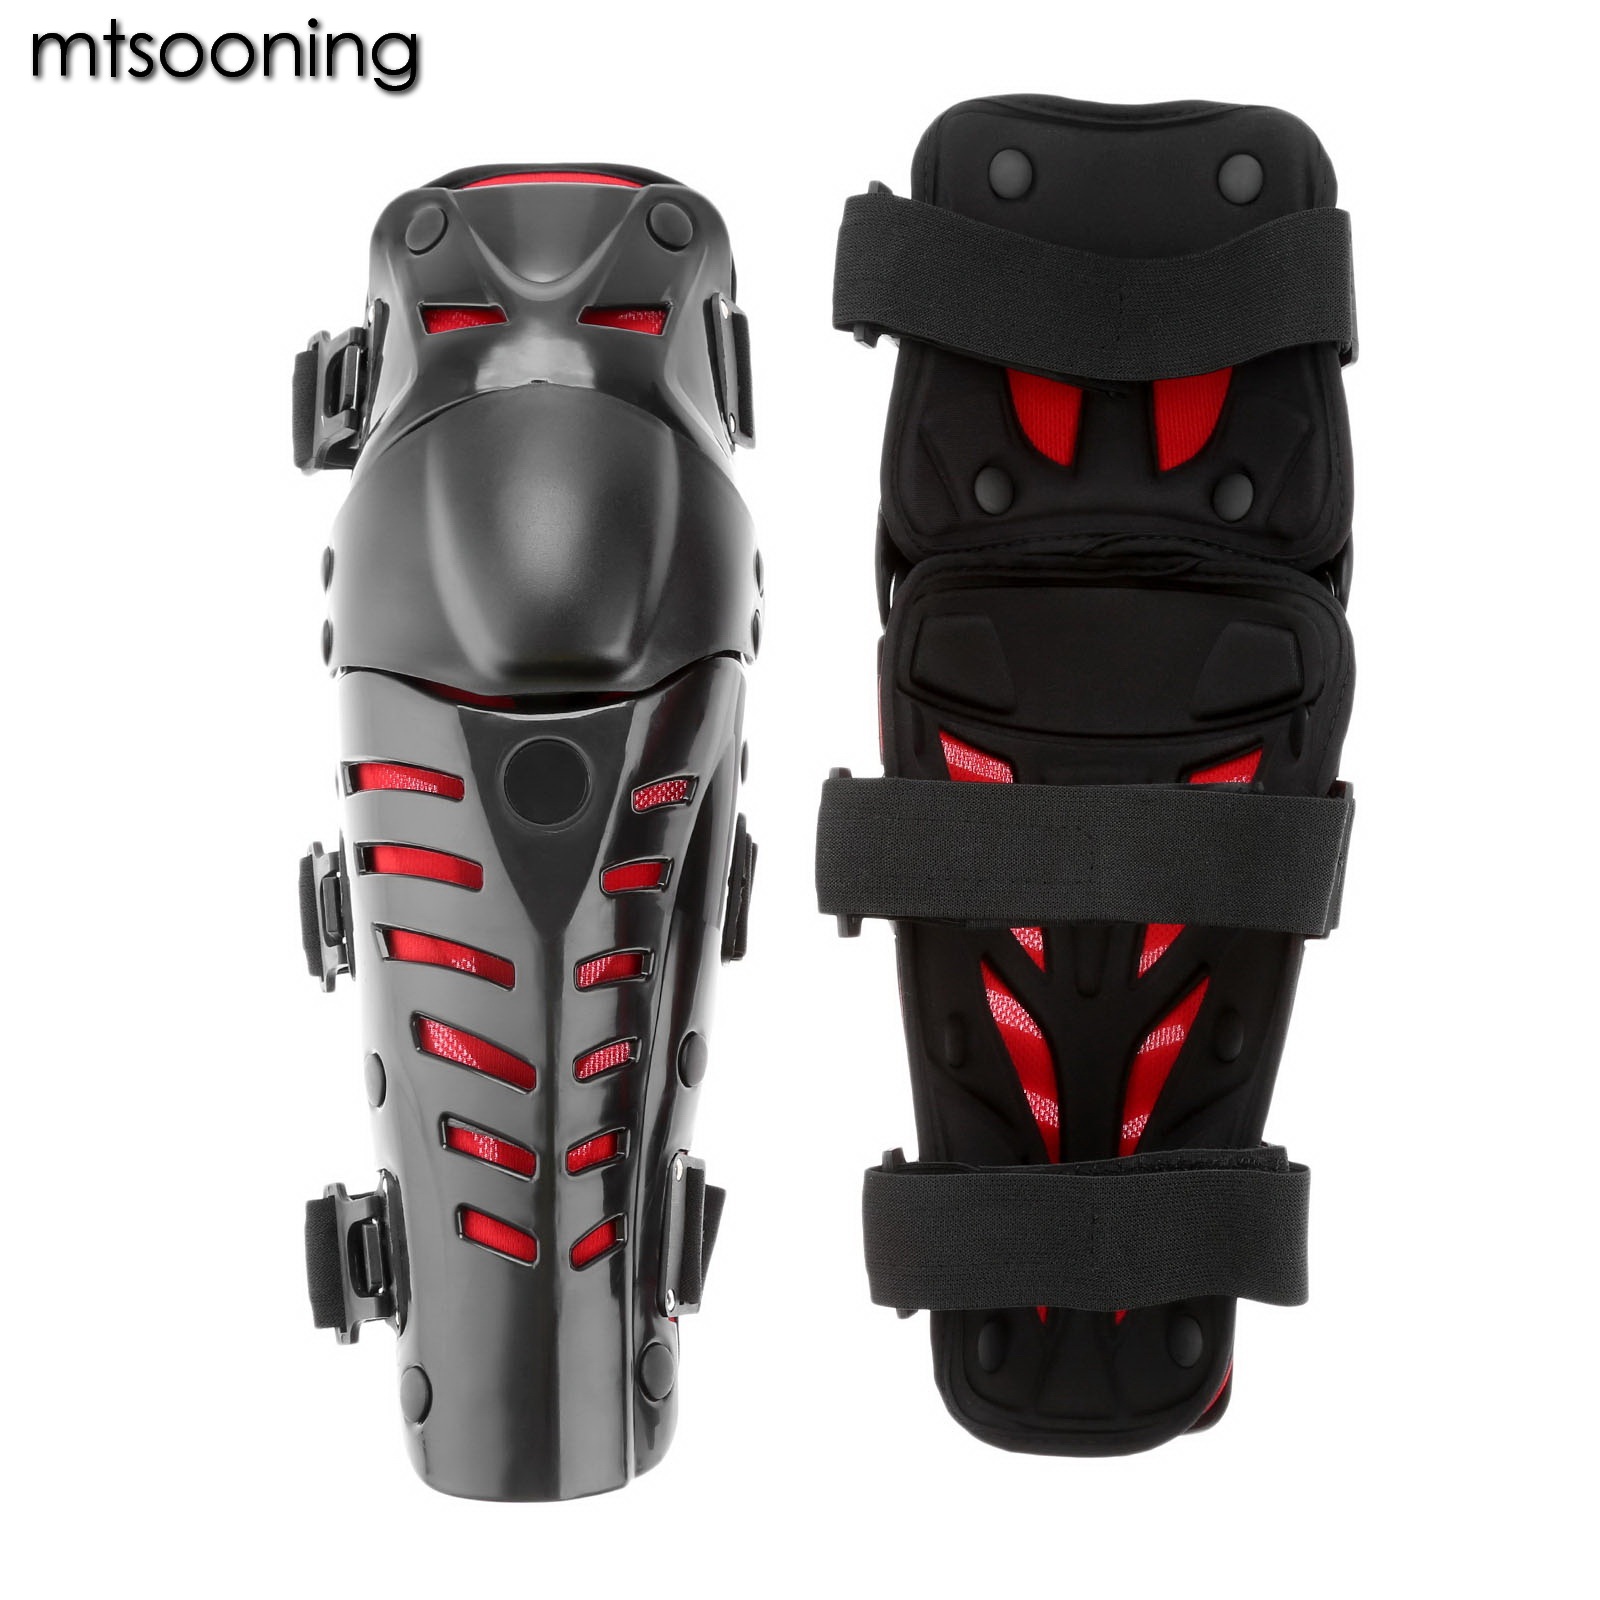 mtsooning Motorcycle Knee pad Protector New Protective Hard kneepad Scooter Motorbike Racing Guards Safety Gears Race Brace